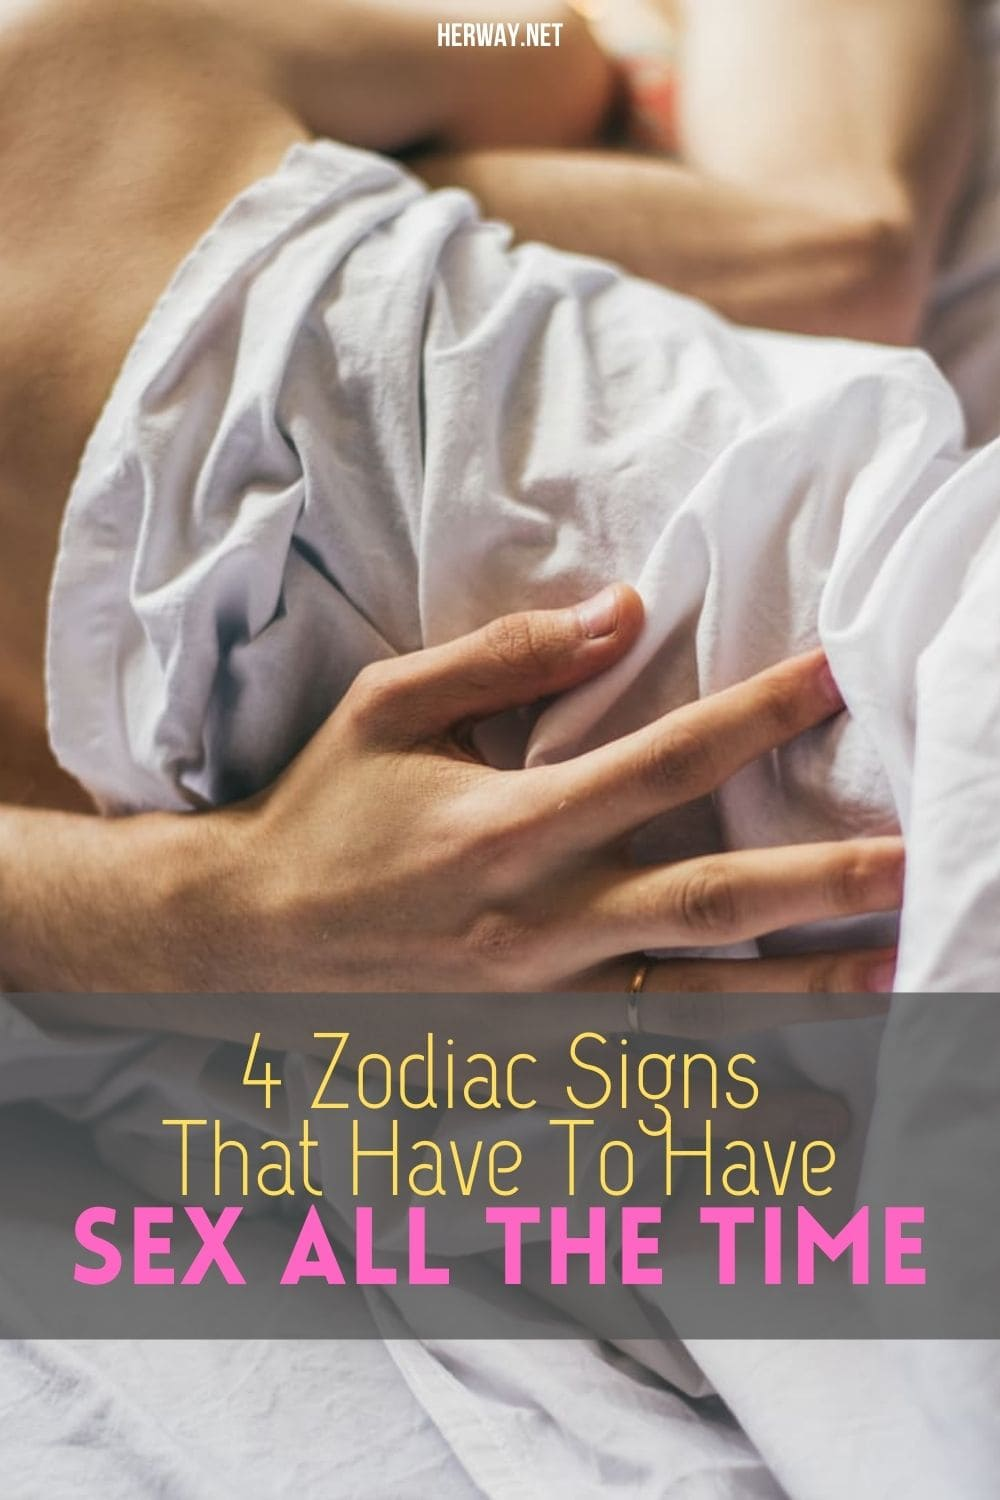 4 Zodiac Signs That Have To Have Sex All The Time